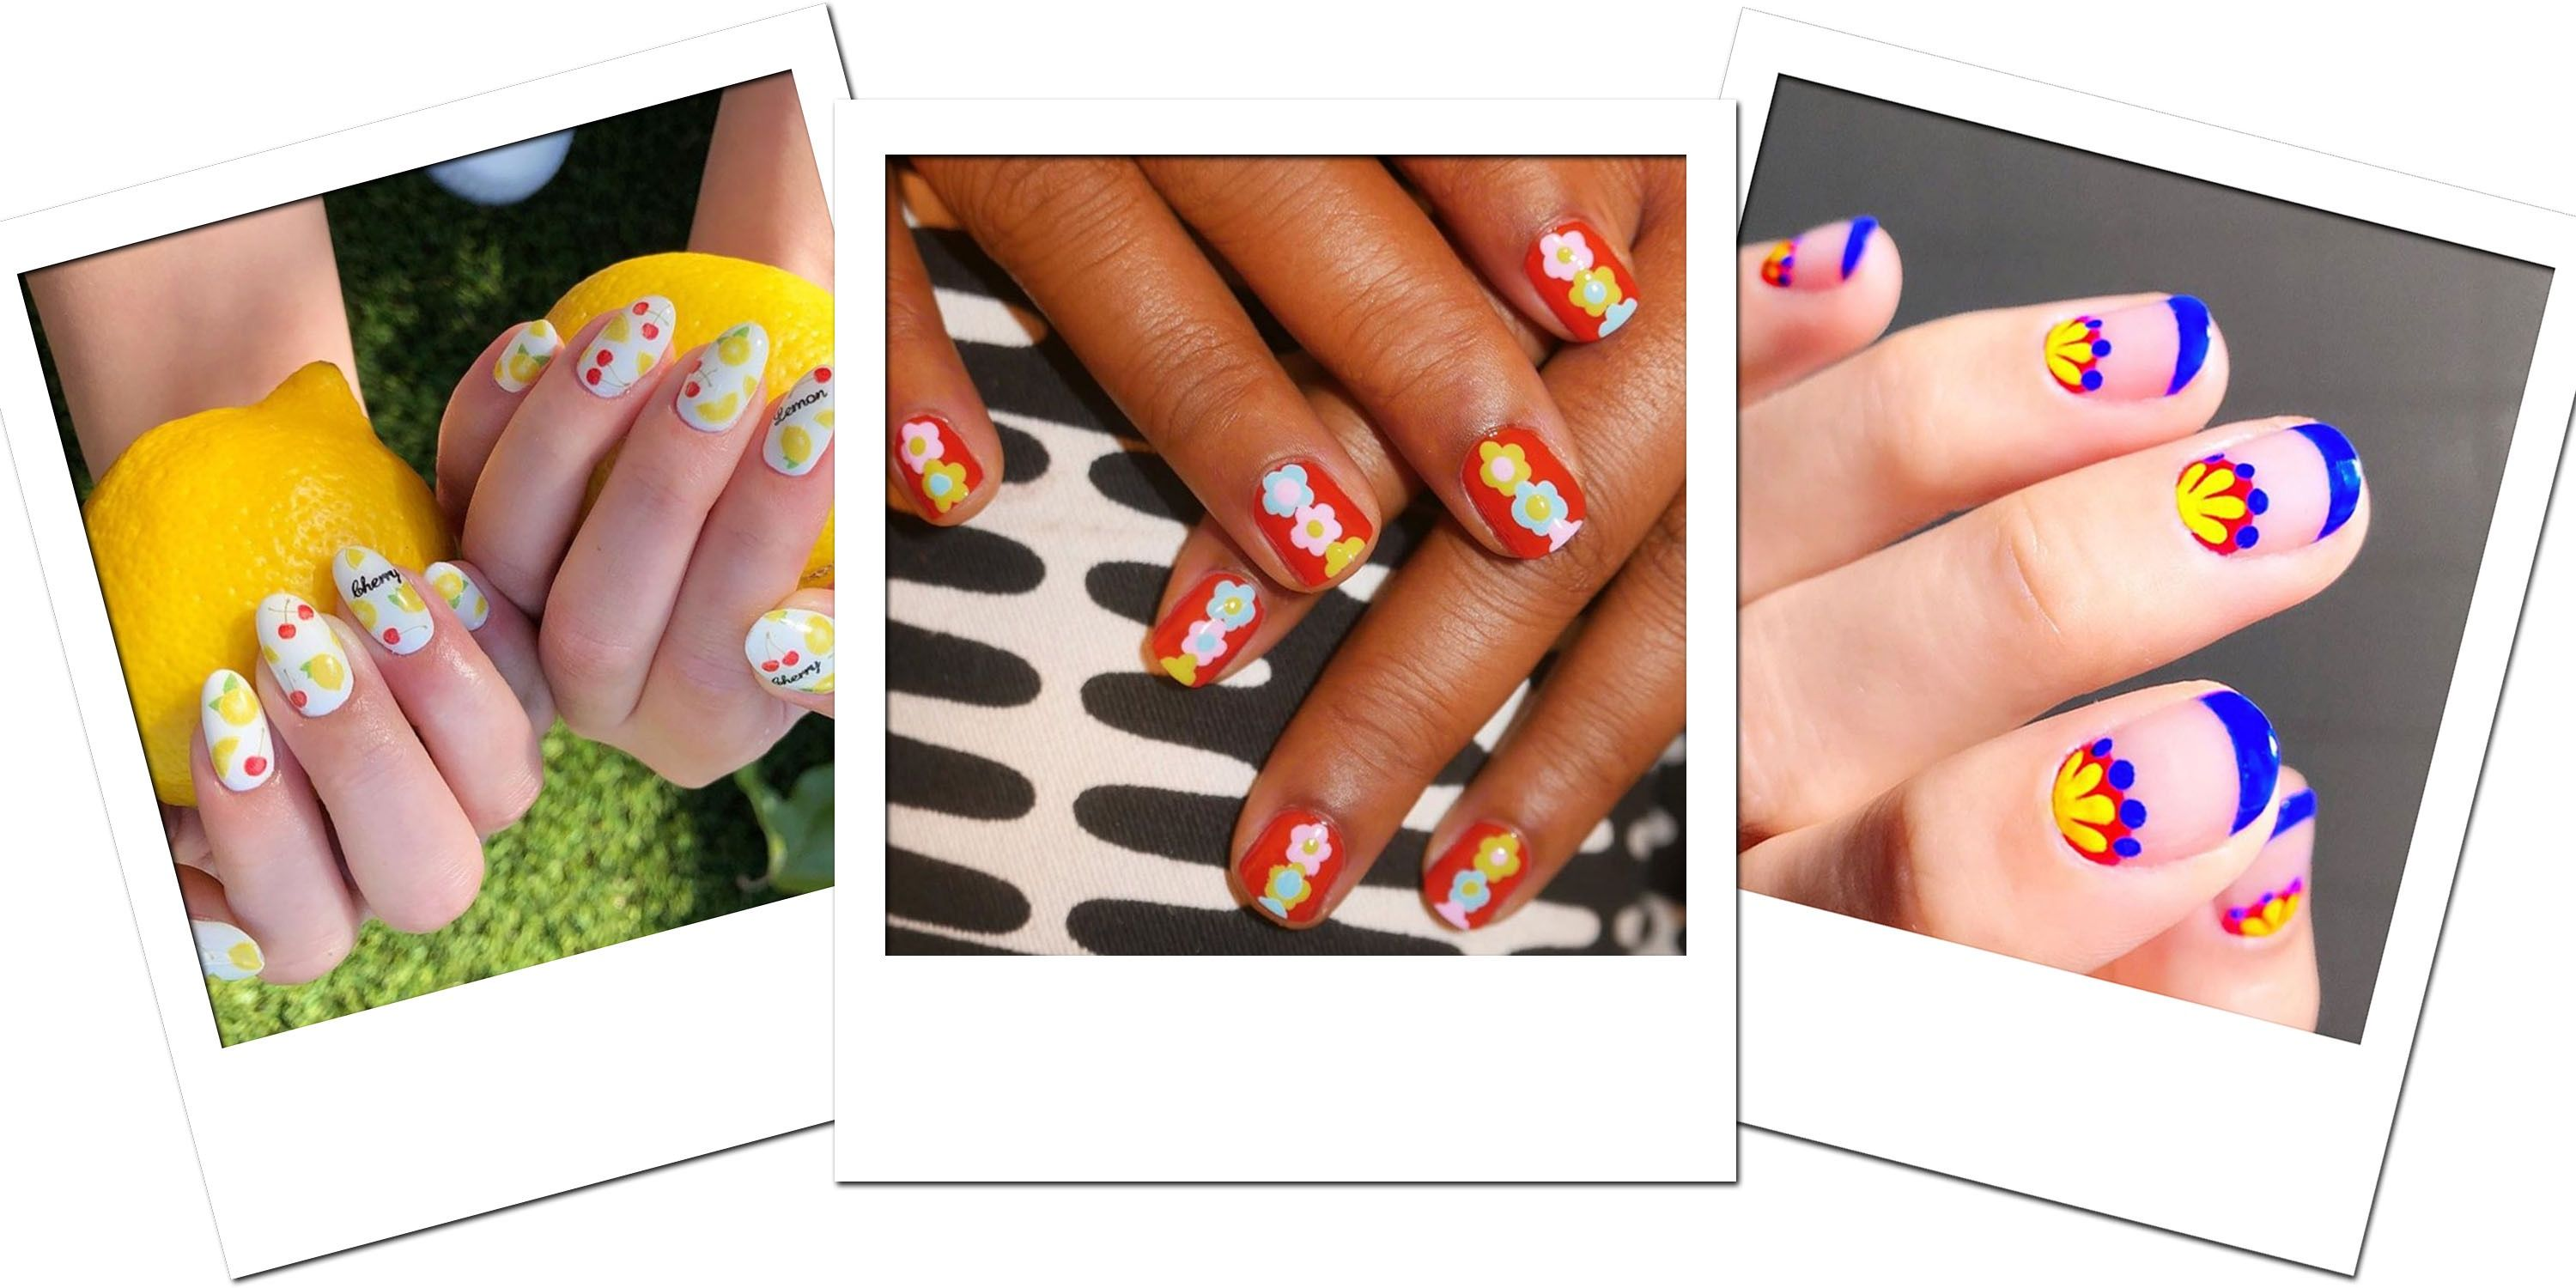 Luxury Nail Art Design: Nail Designs For Summer